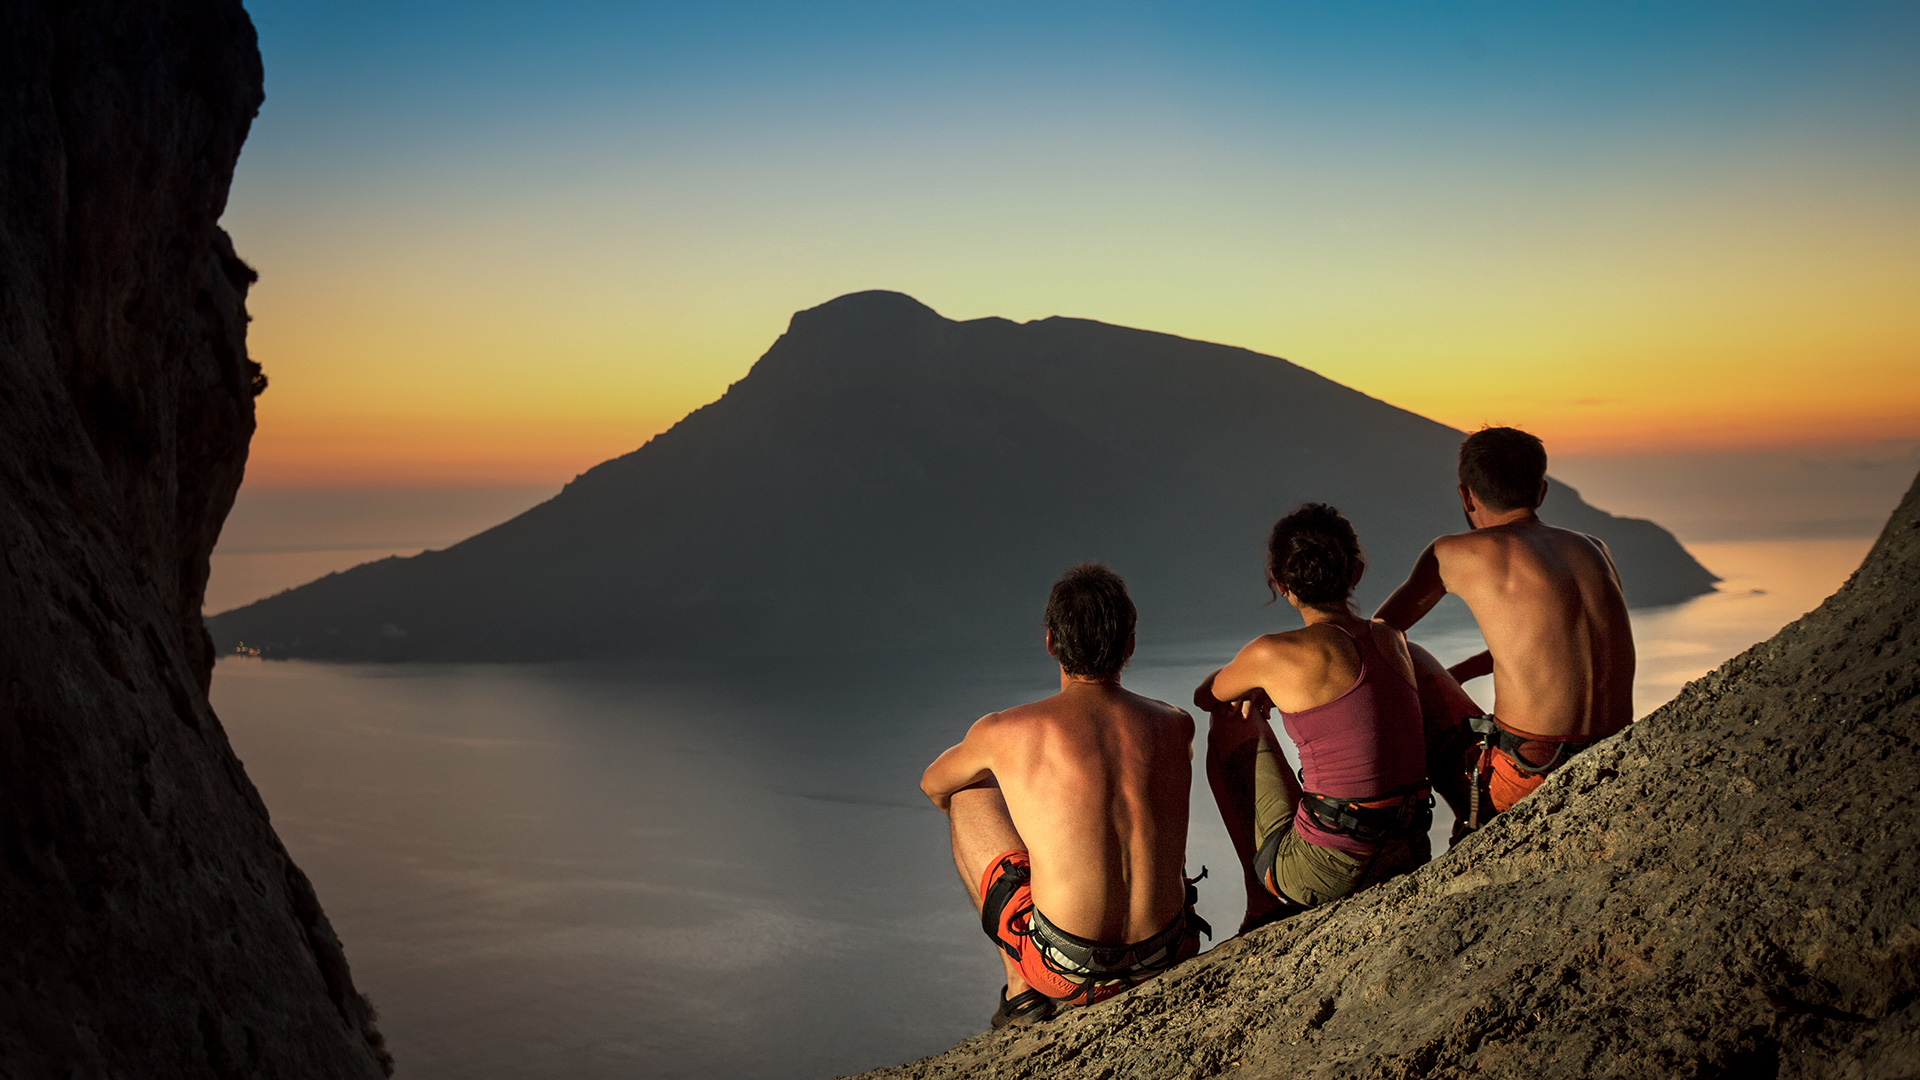 Rock climbers admiring the sunset view of Telendos islet opposite from Kalymnos island